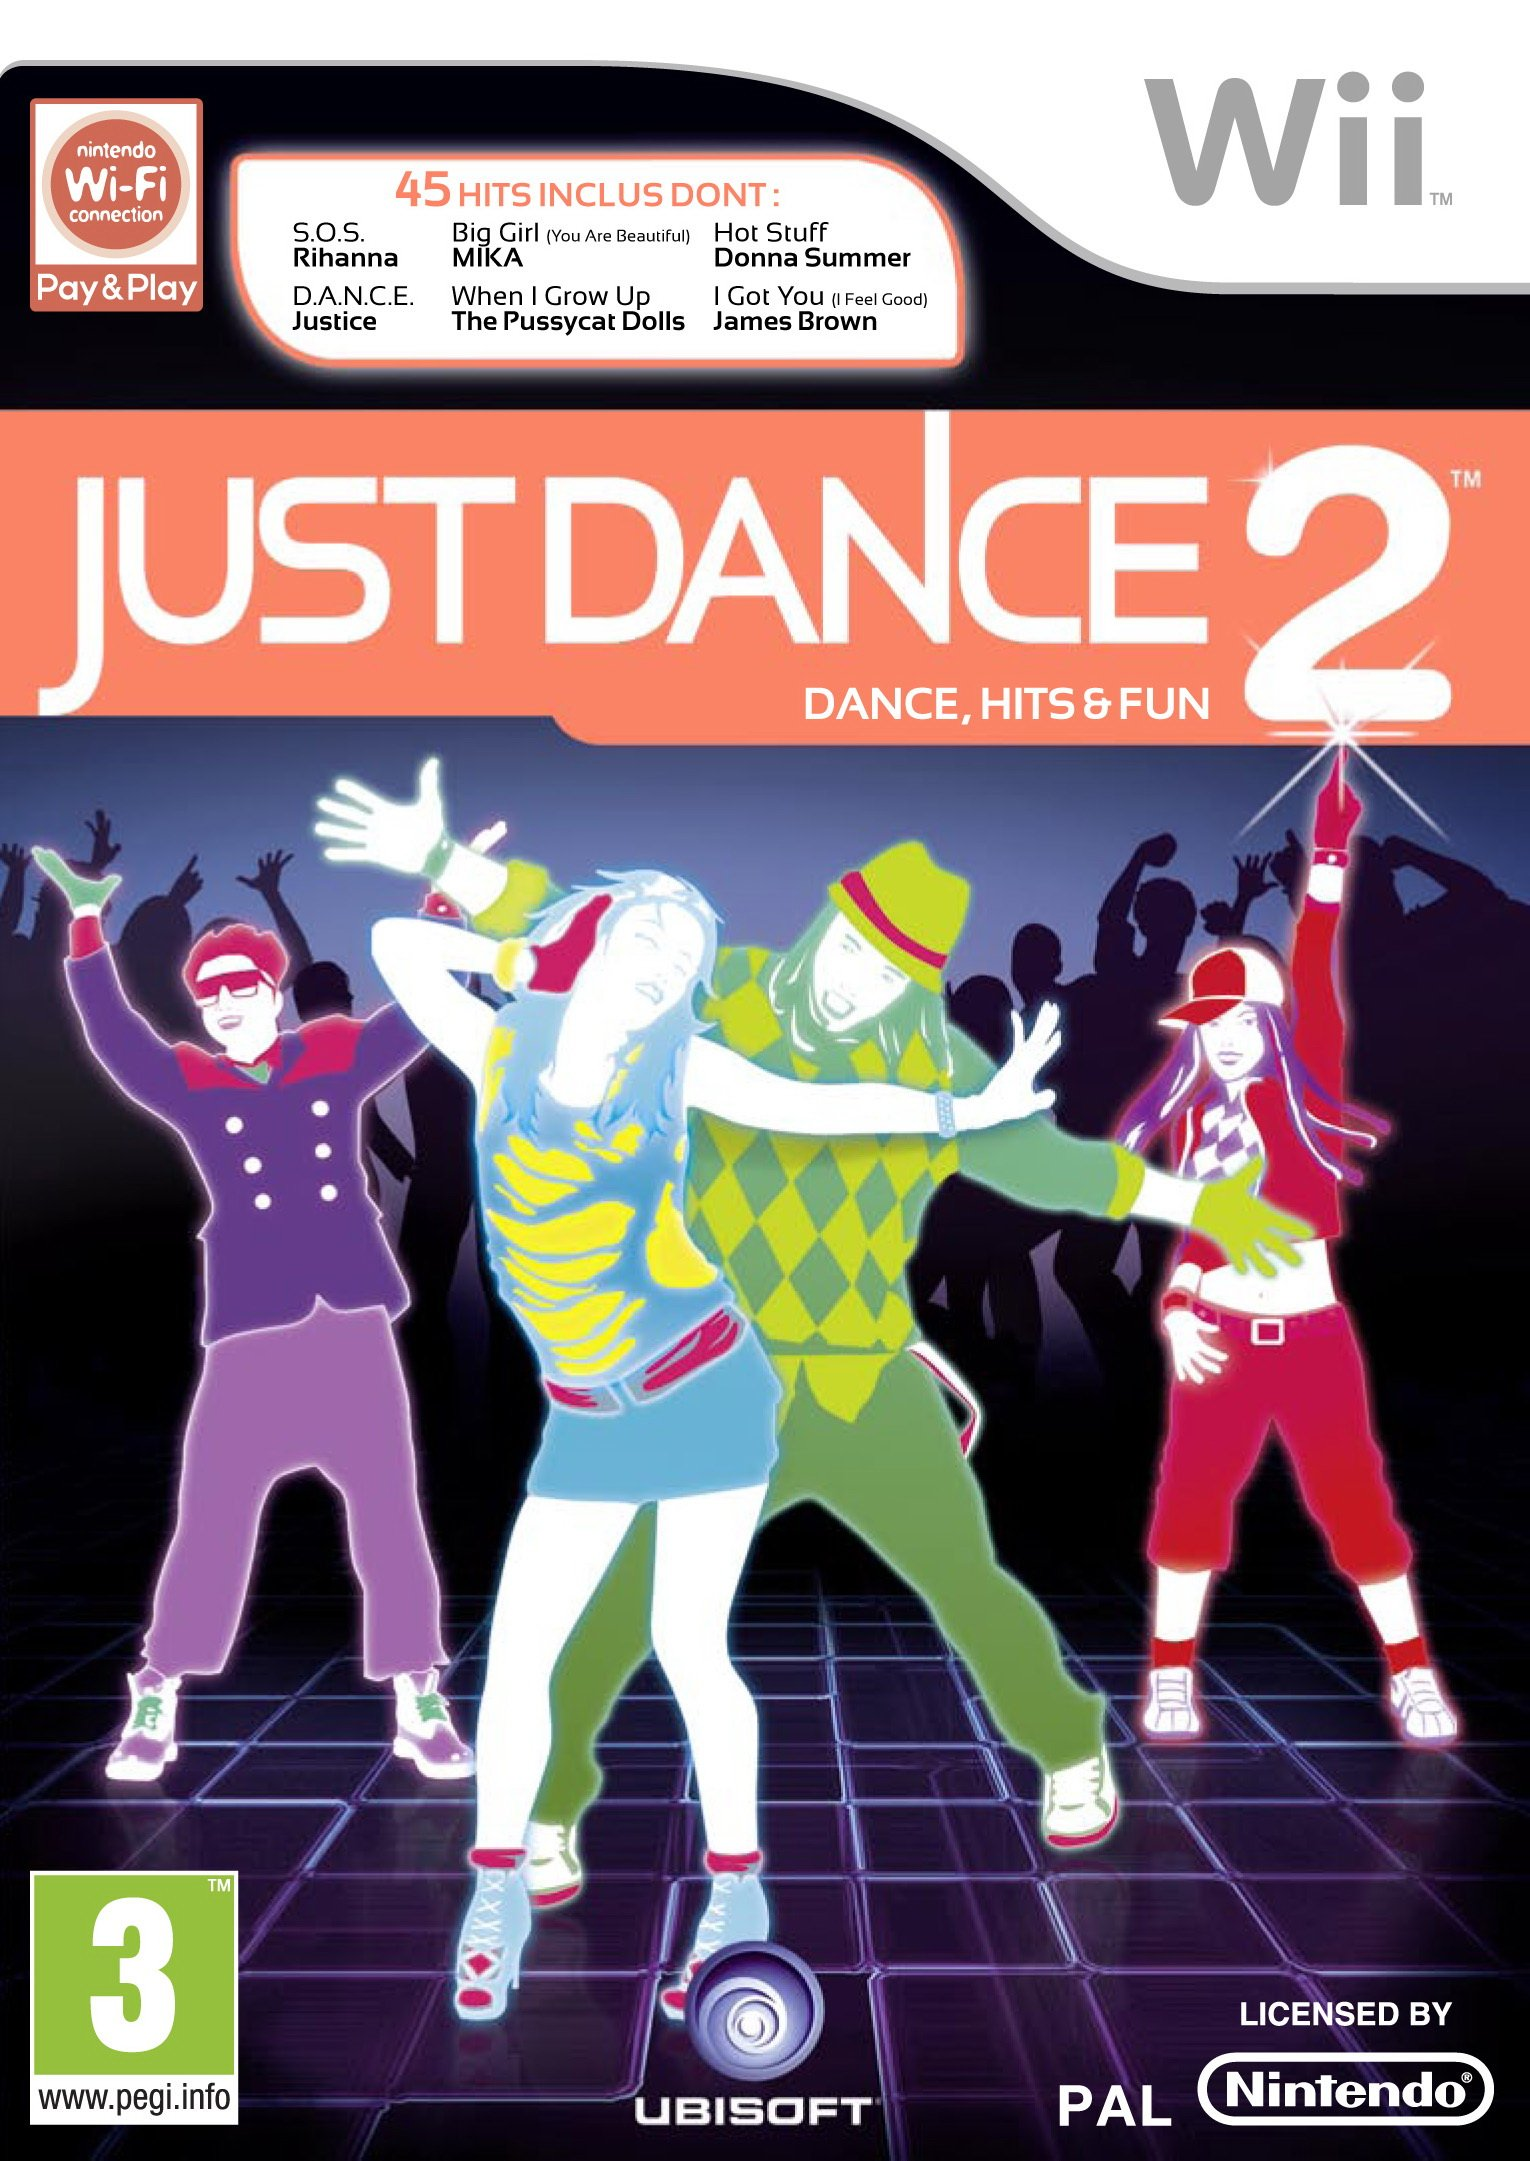 Je veux ~                                                    Just_Dance_2_Jaquette_FR